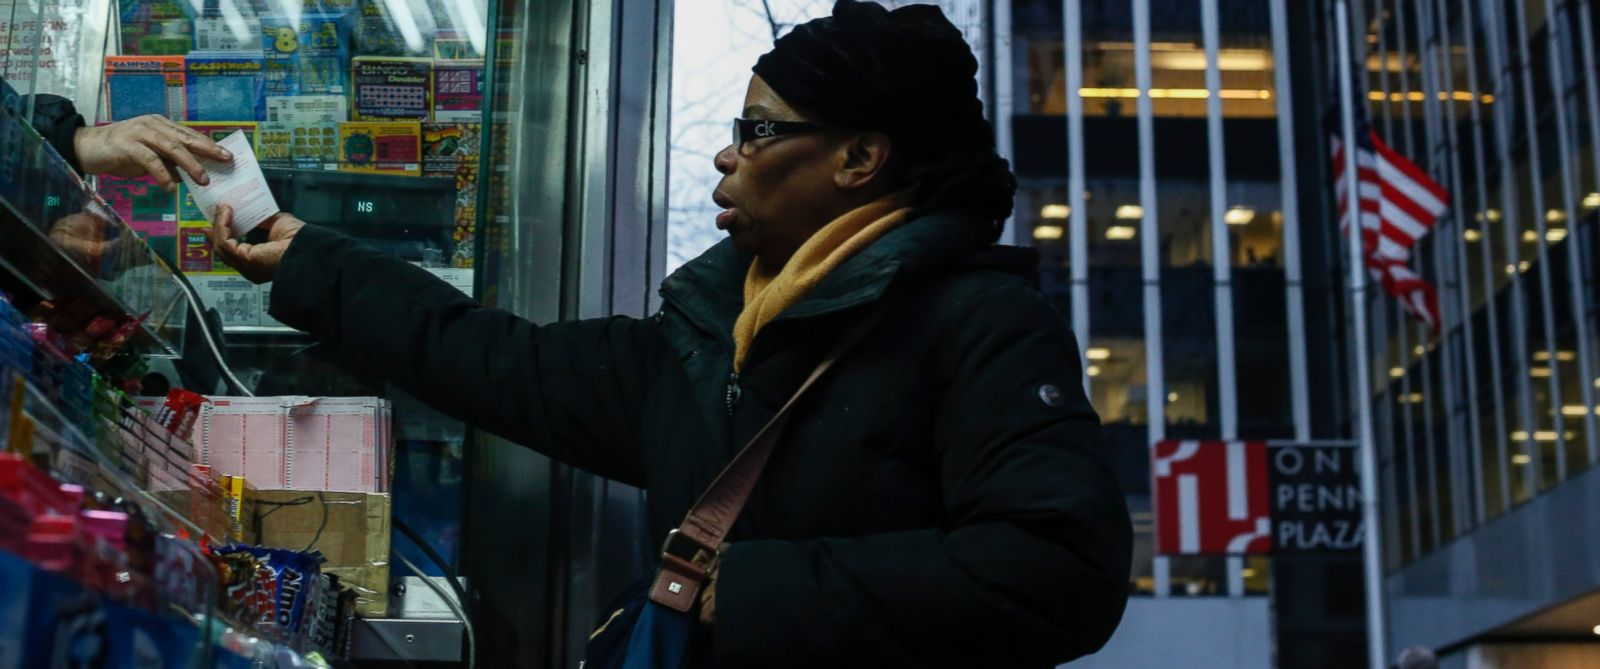 PHOTO:A woman buys a Powerball lottery ticket at a newsstand in New York City, Jan. 12, 2016.